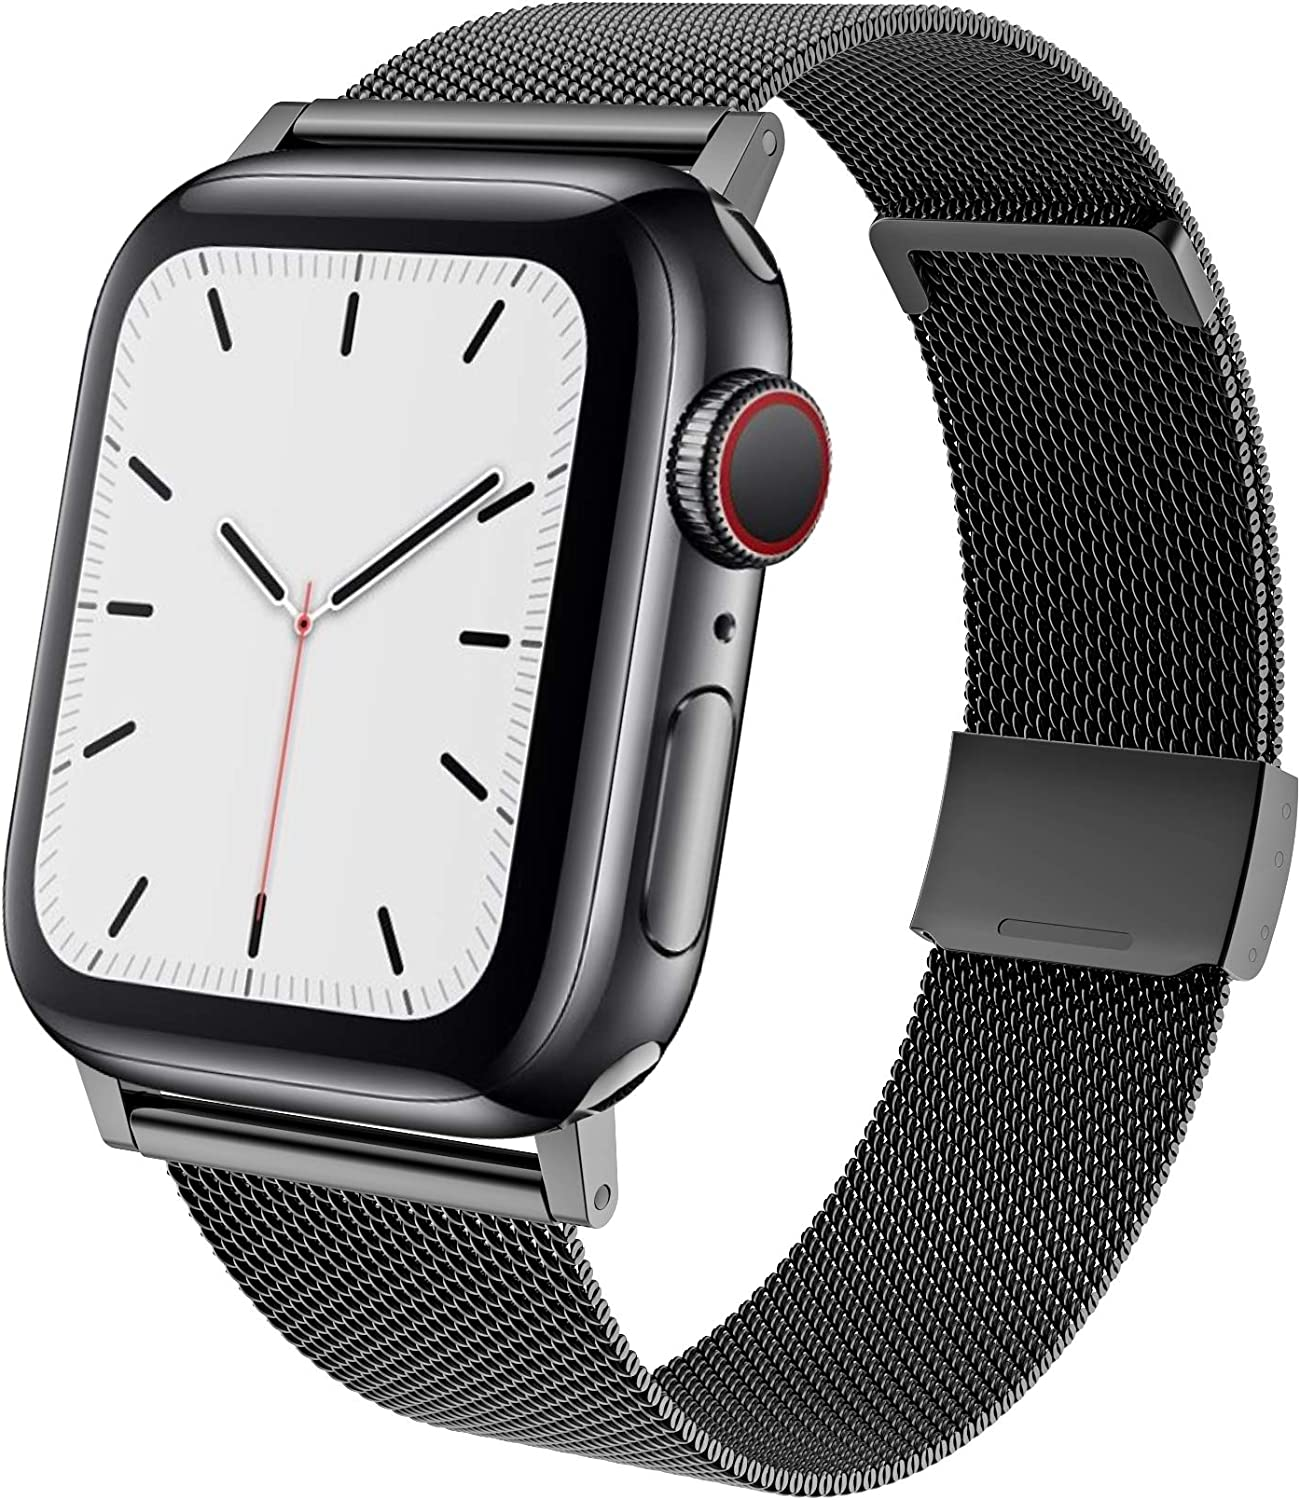 TACA-H Compatible with Apple Watch Bands 44mm 42mm,Stainless Steel Replacement iWatch Bands for Series 6/SE/5/4/3/2/1